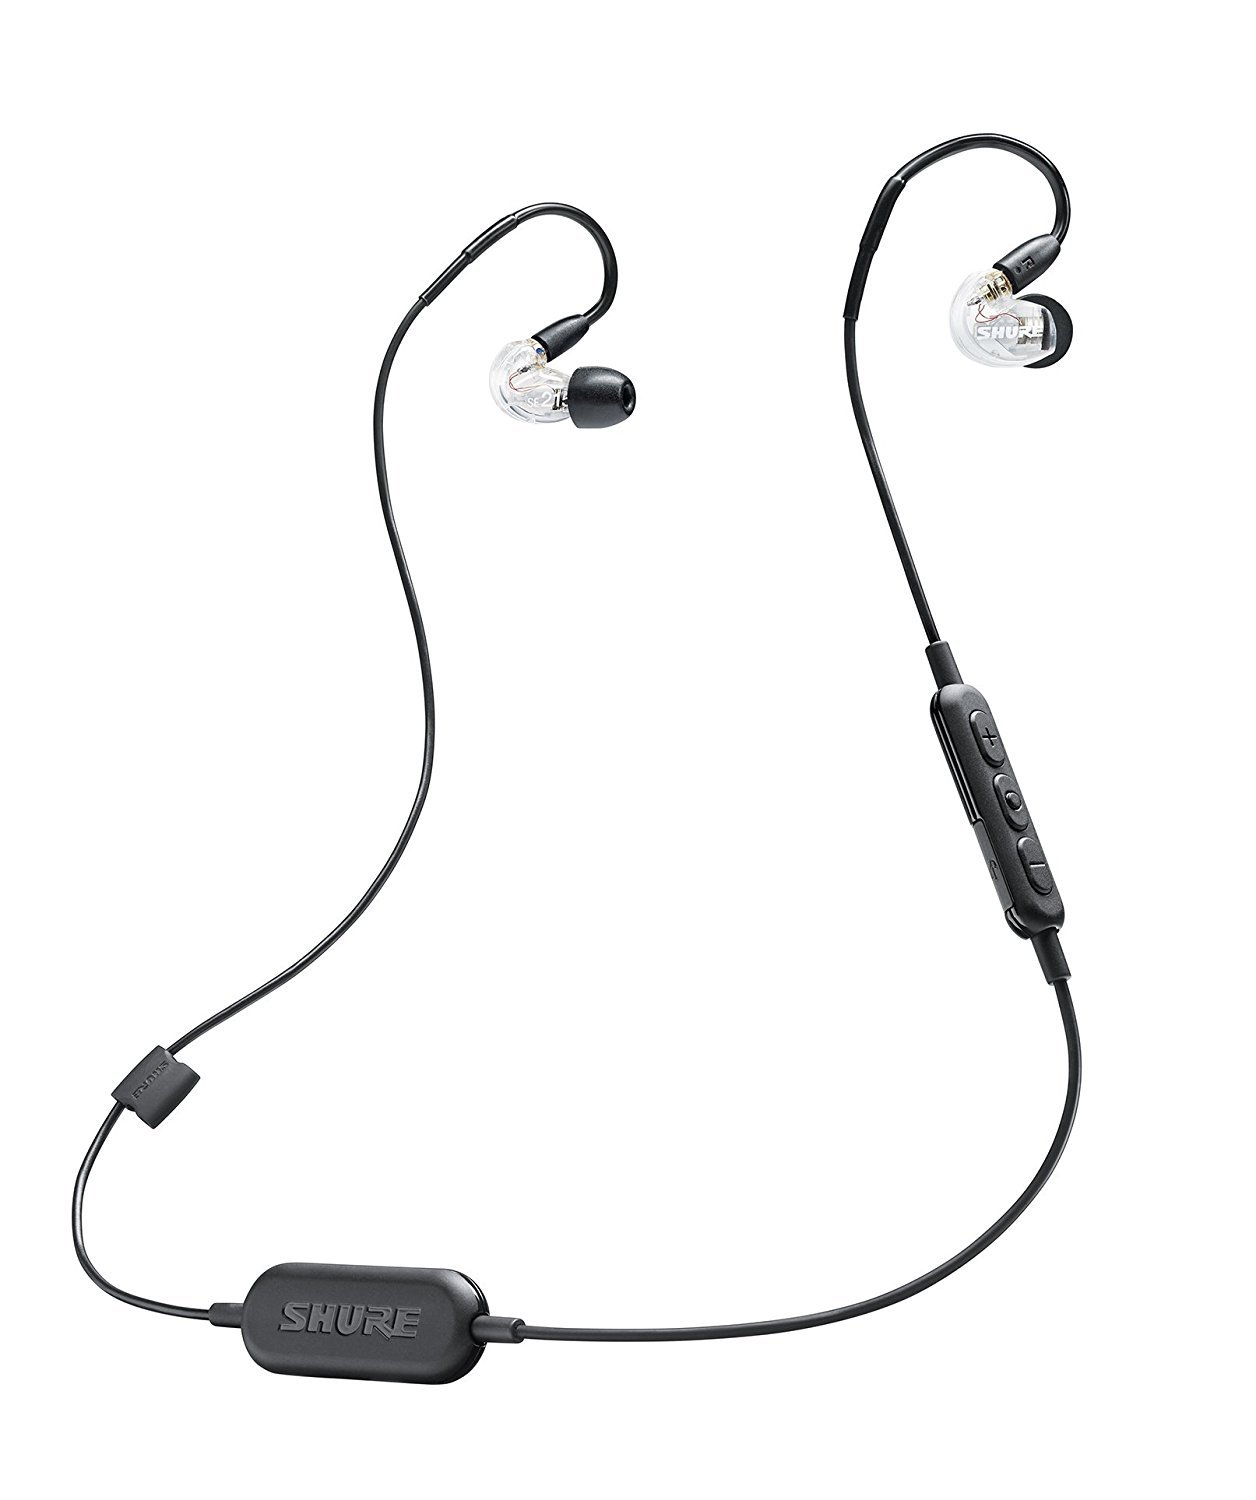 43bbc0e066a Amazon.com: Shure SE215-CL-BT1 Wireless Sound Isolating Earphones with  Bluetooth Enabled Communication Cable: Musical Instruments